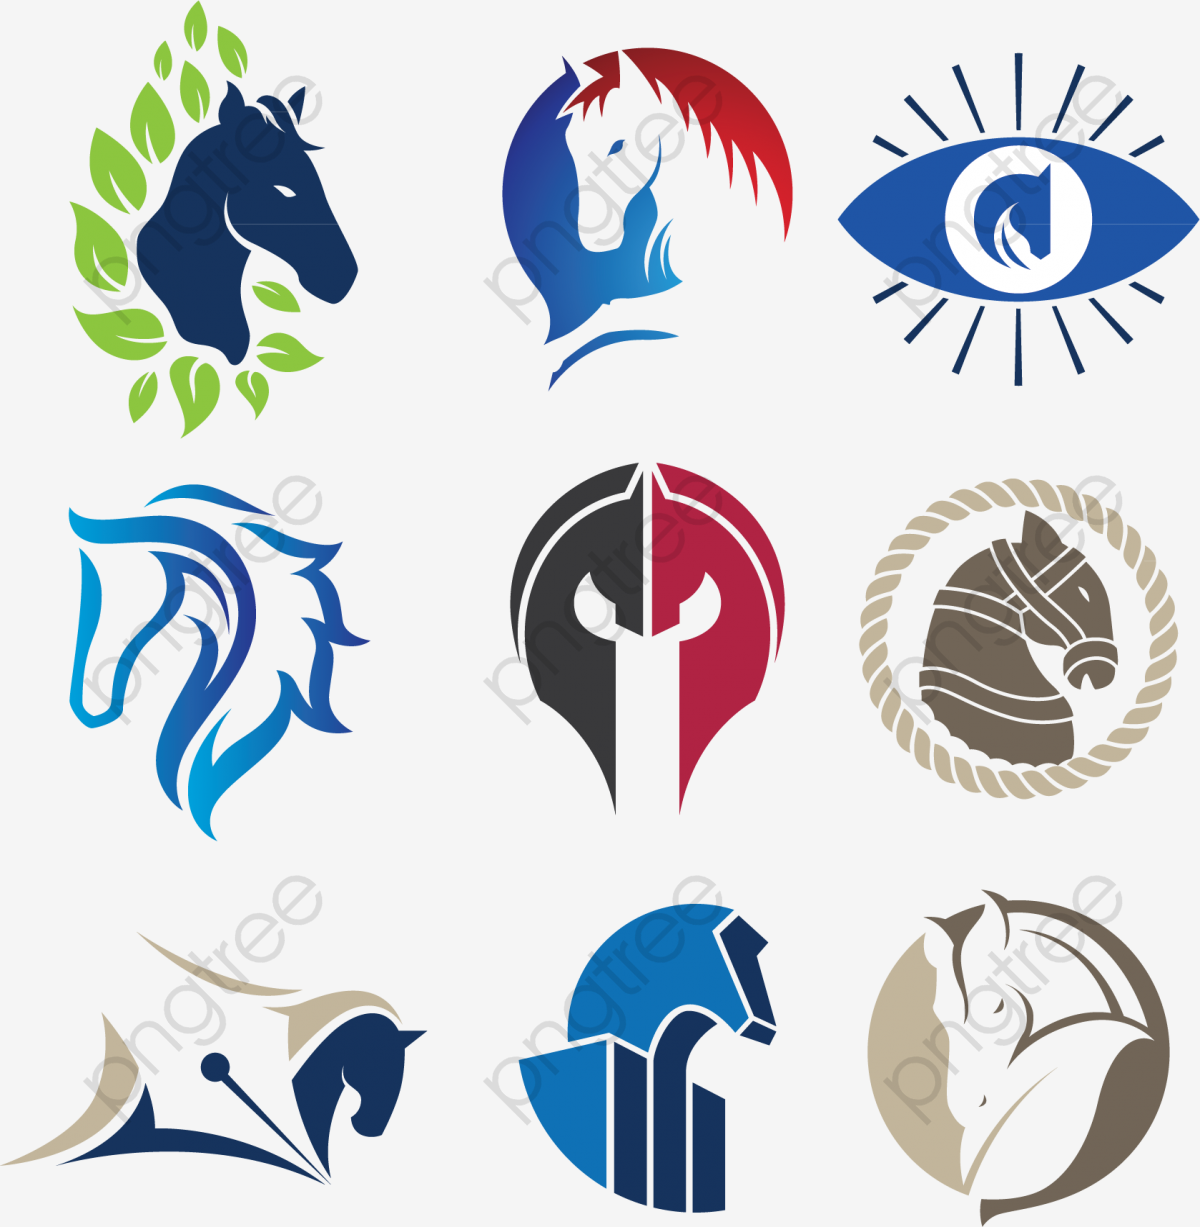 creative-vector-horse-logo-design-png-clipart_1931336 Ideas For Creative Vector Art Logo @bookmarkpages.info